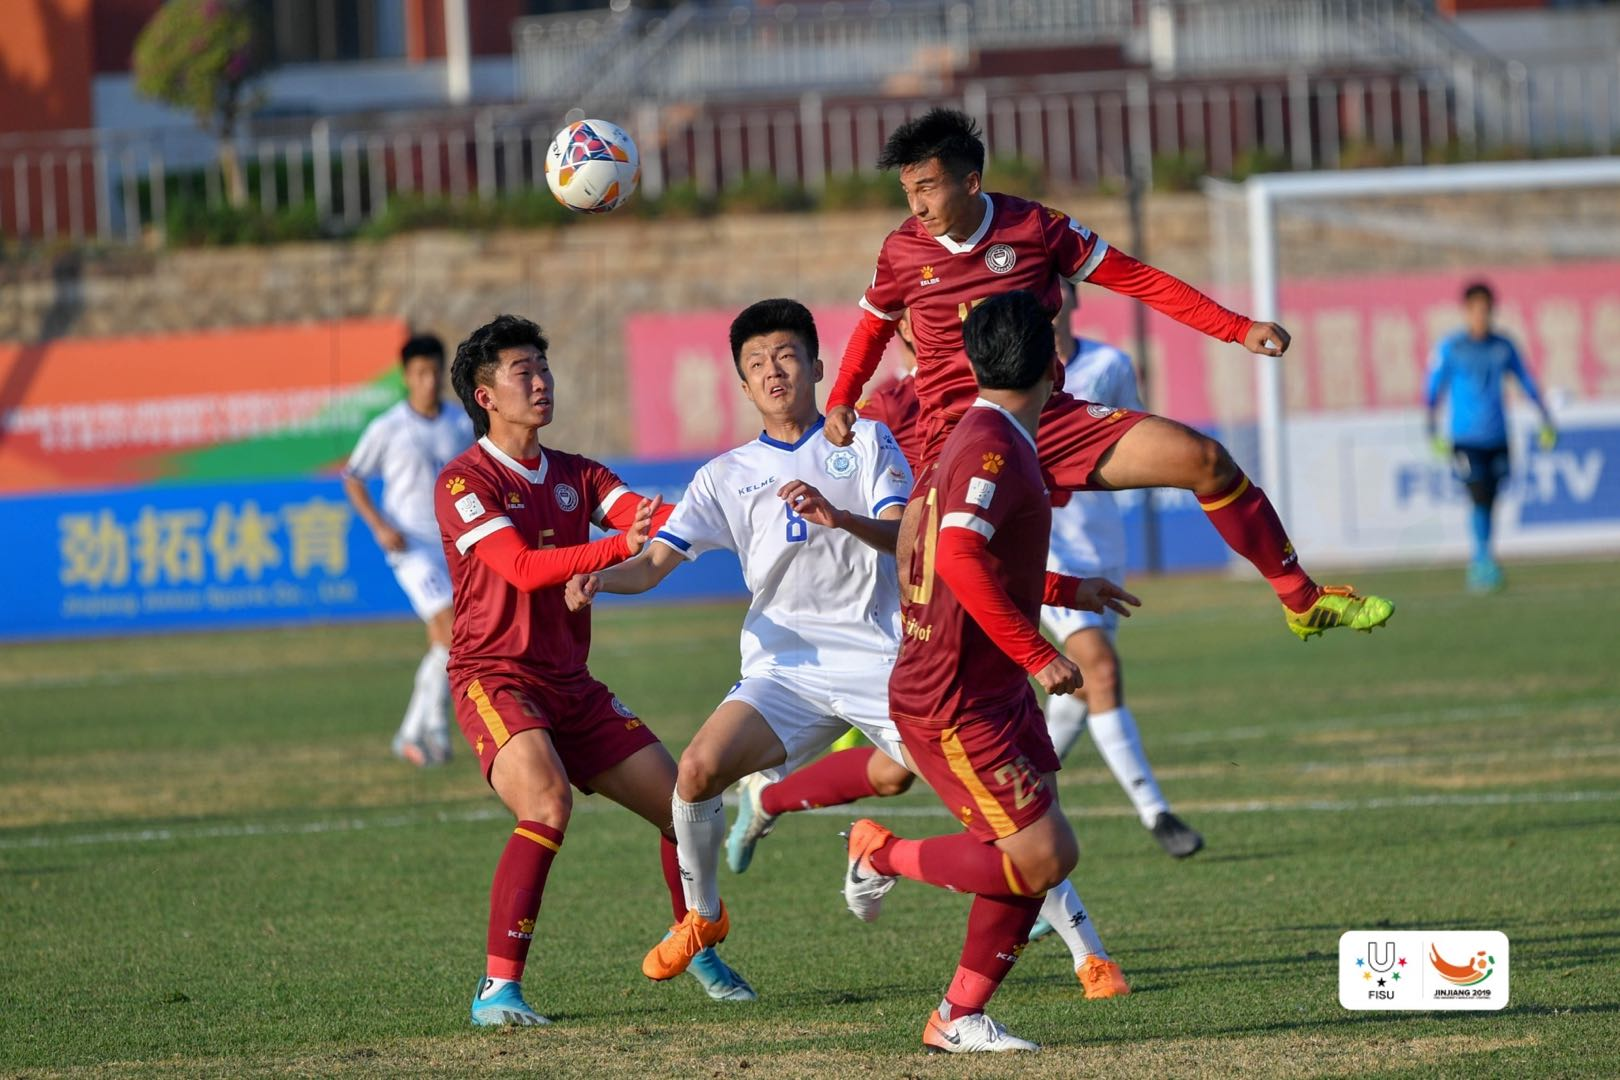 Taiyuan University of Technology loses to Hohai University by 0-1